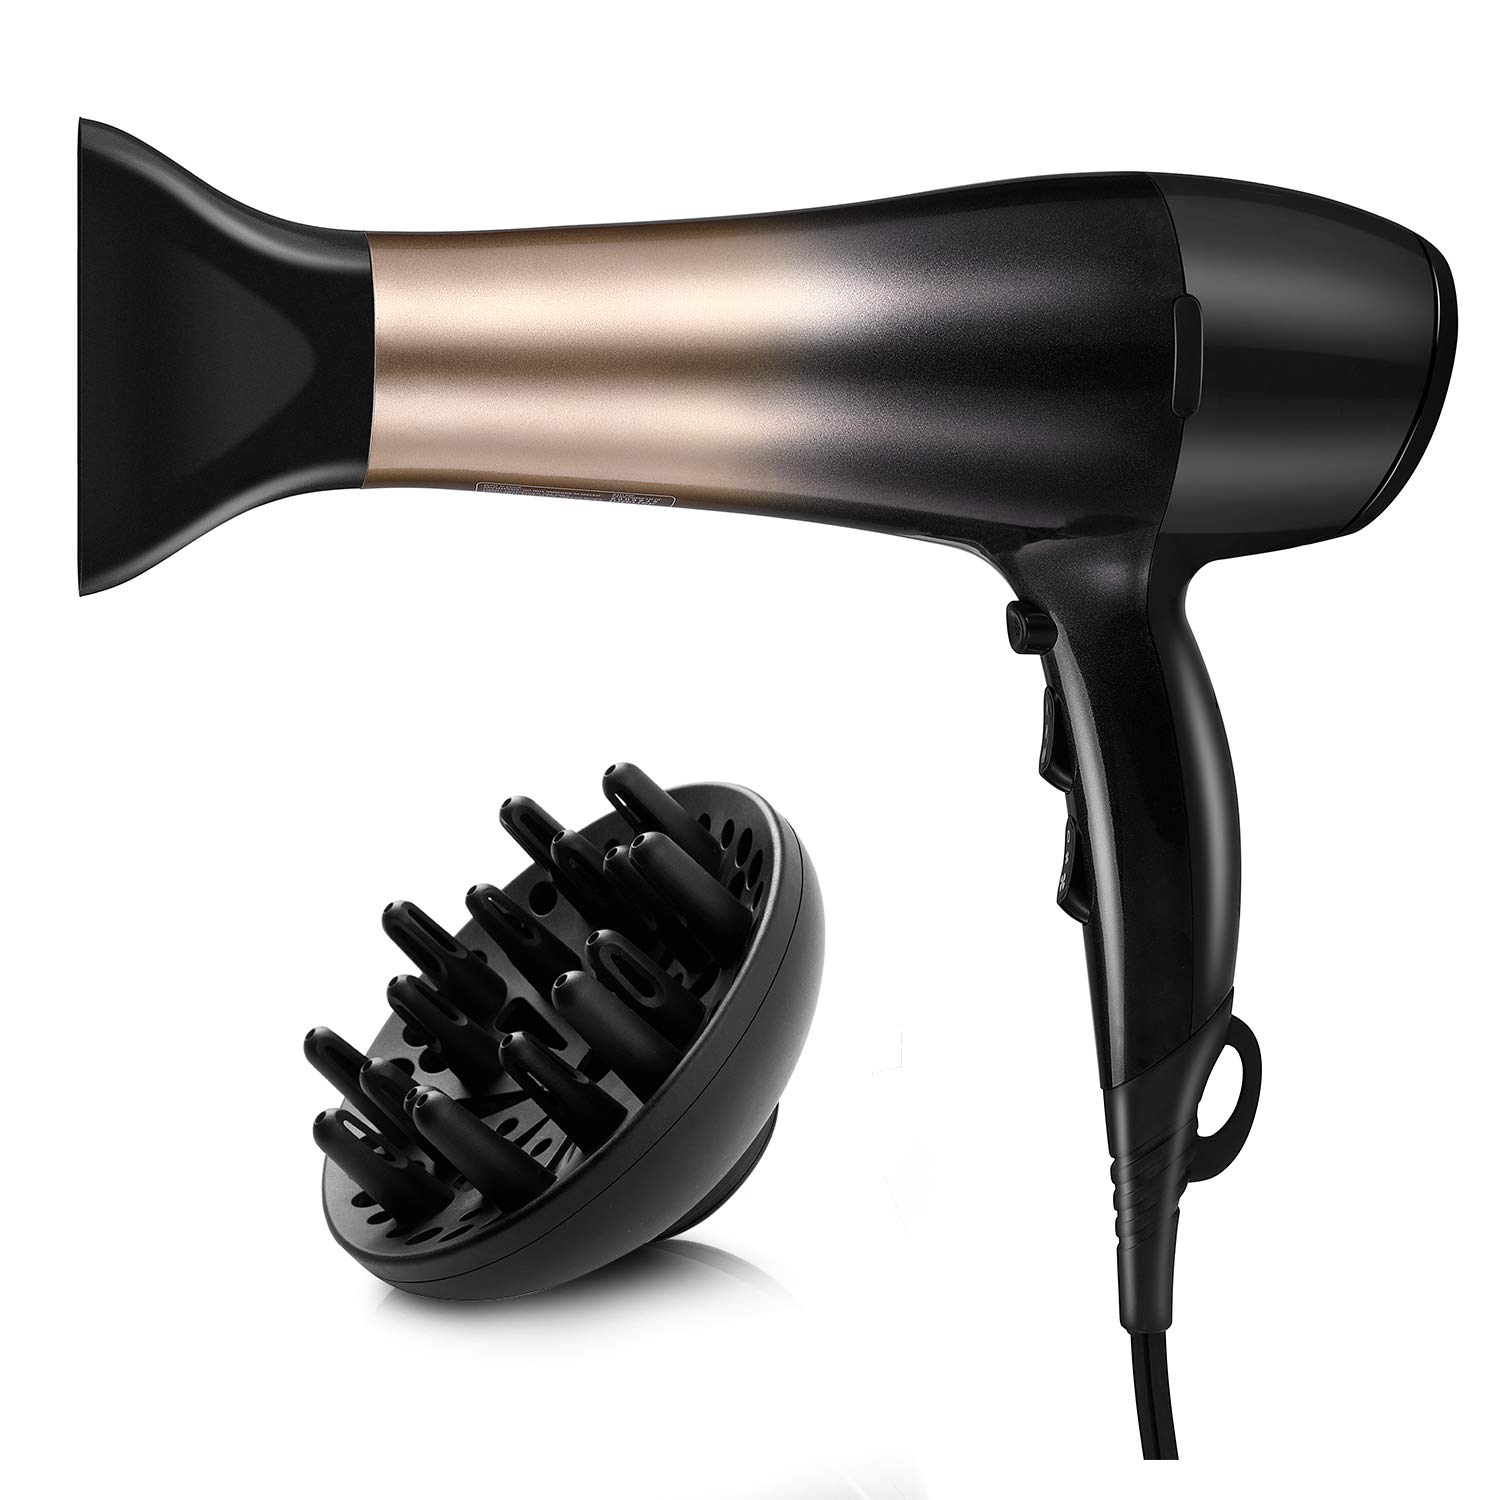 KIPOZI 1875W Hair Dryer